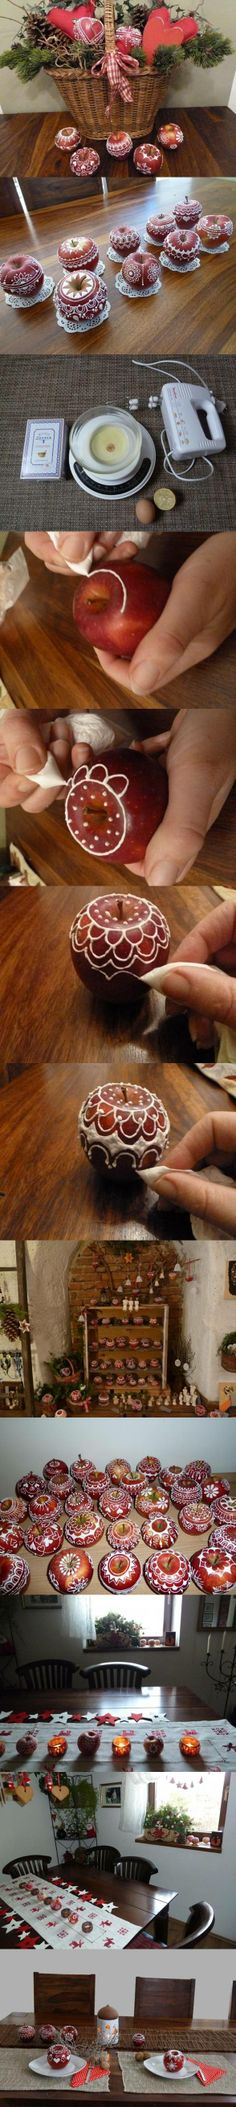 DIY Decorated Apples DIY Decorated Apples by diyforever Nordic Christmas, Christmas Holidays, Christmas Crafts, Christmas Decorations, Xmas, Christmas Ornaments, Advent, Mini Pinatas, Holiday Tree